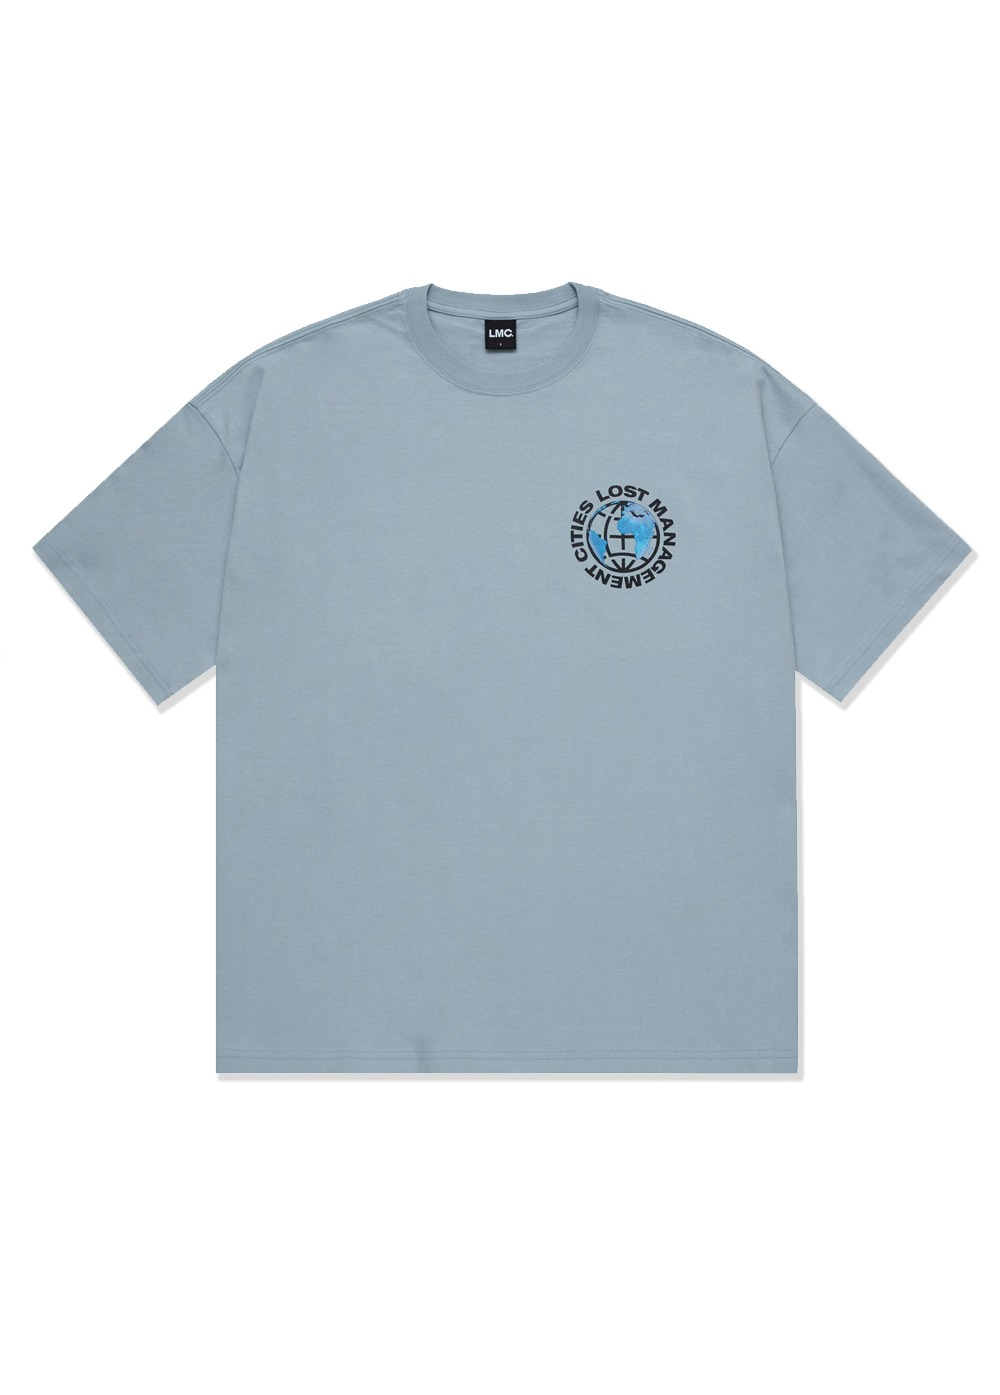 LMC EARTH WHEEL OVERSIZED TEE gray